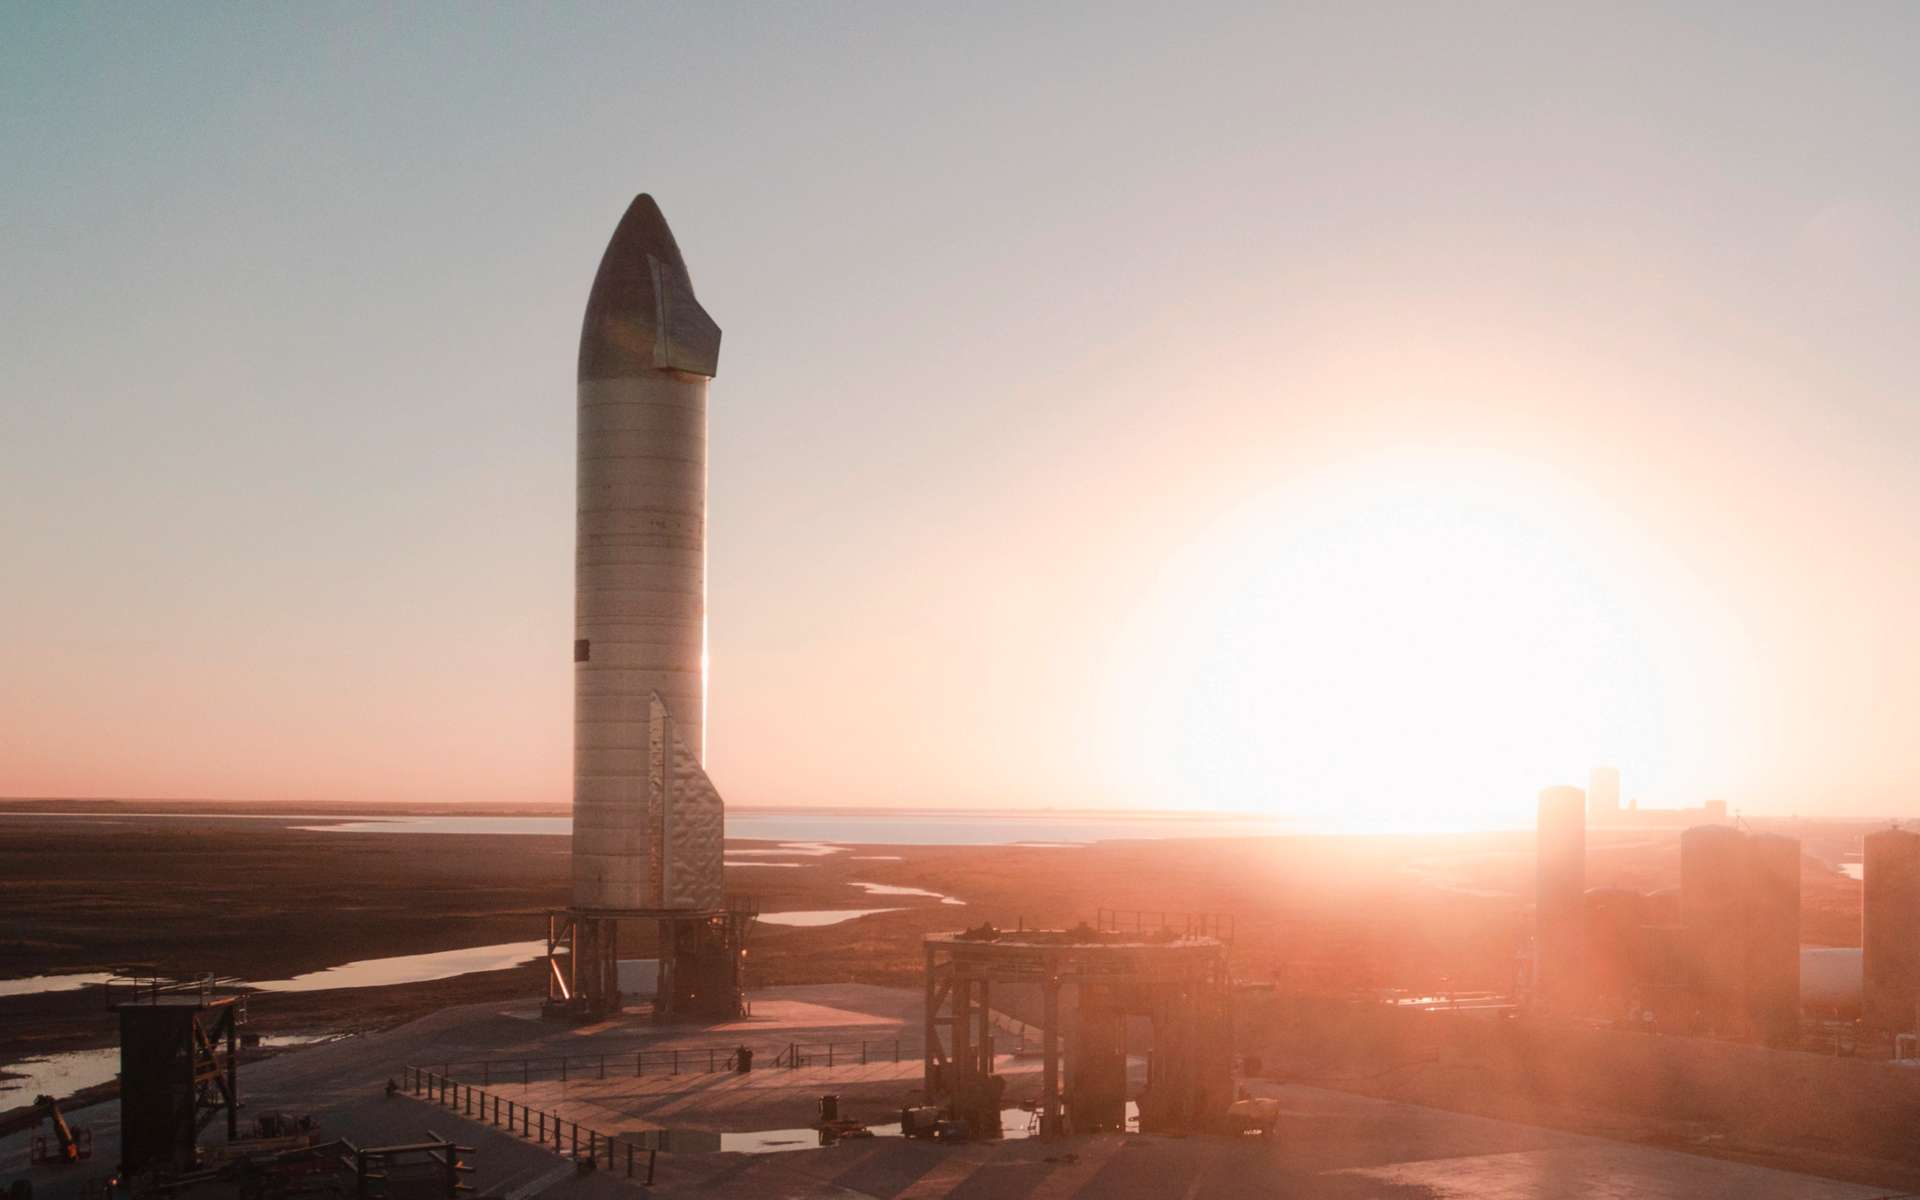 SpaceX : revivez le vol du prototype SN9 de Starship - Futura